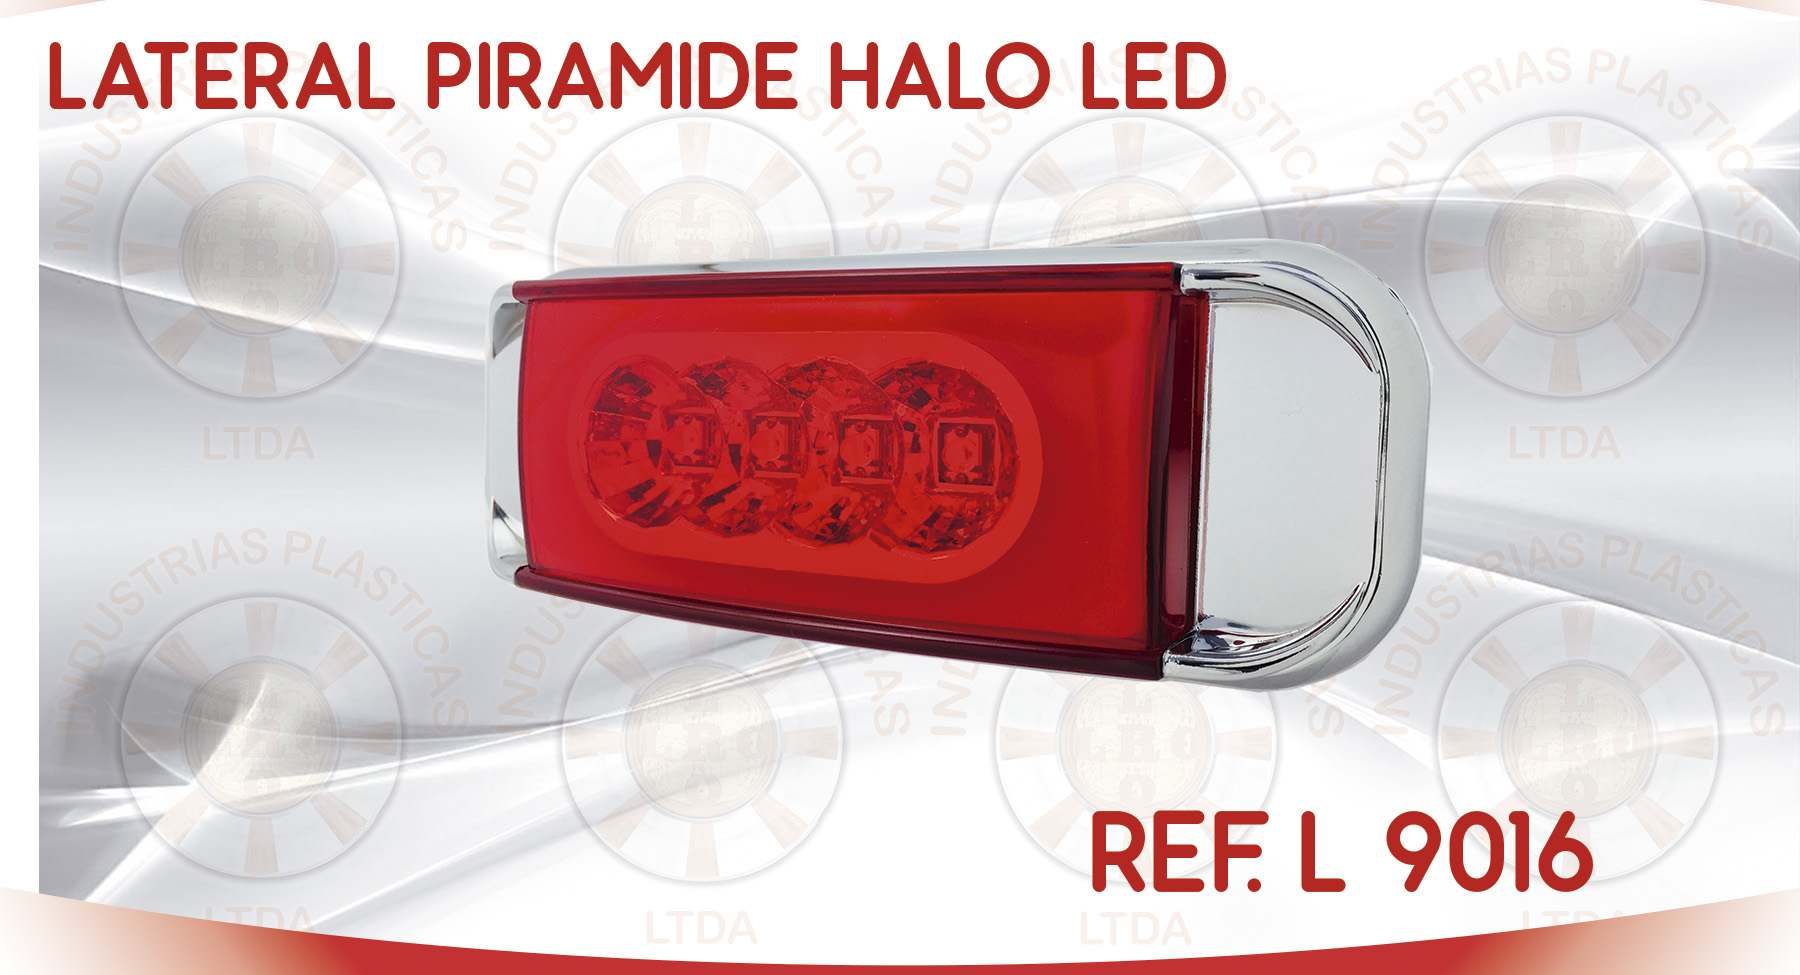 L 9016 LATERAL PIRAMIDE HALO LED